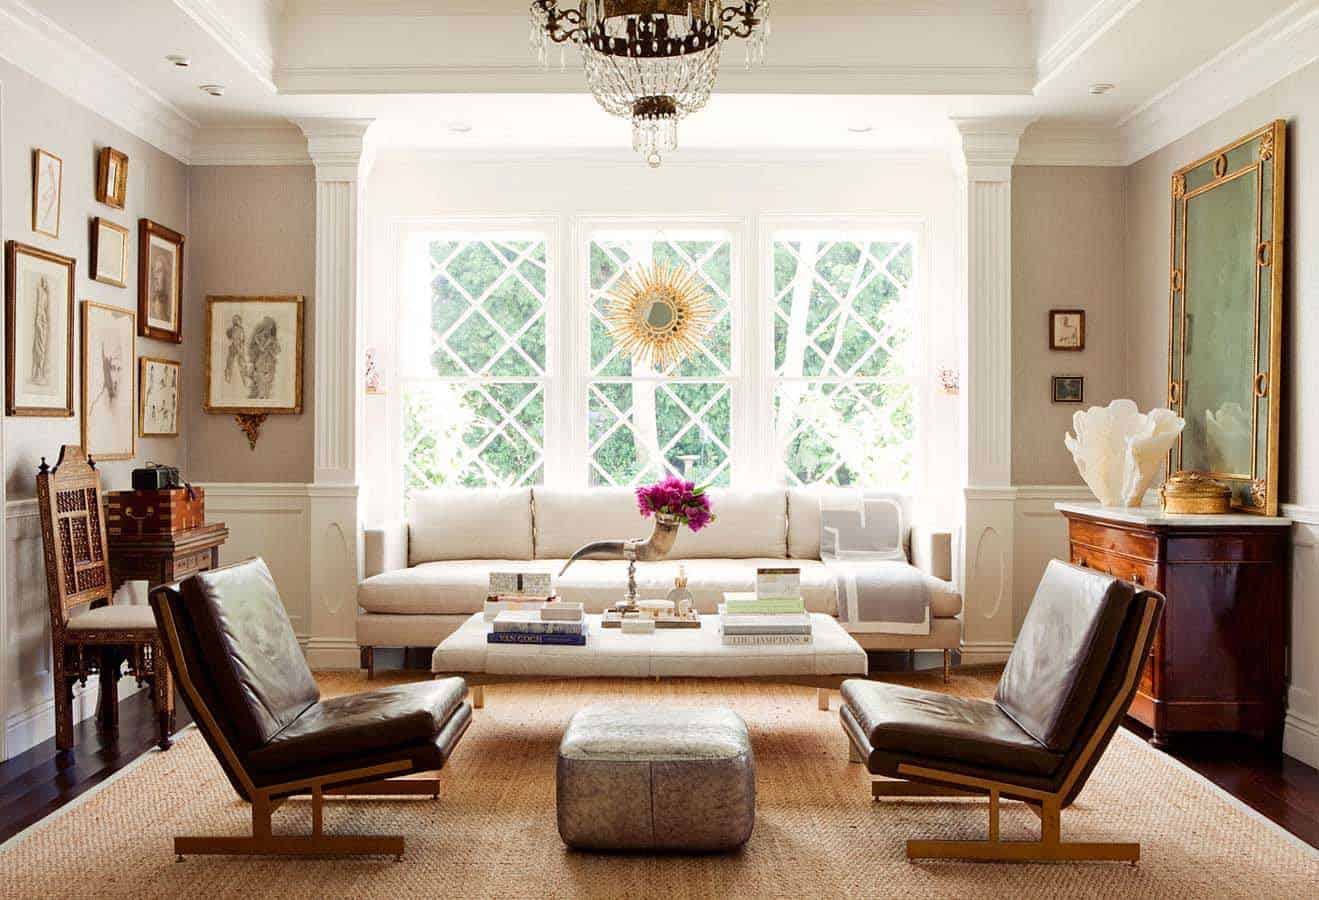 Sitting Room Chairs Arranging Living Room Furniture Kristina Wolf Design